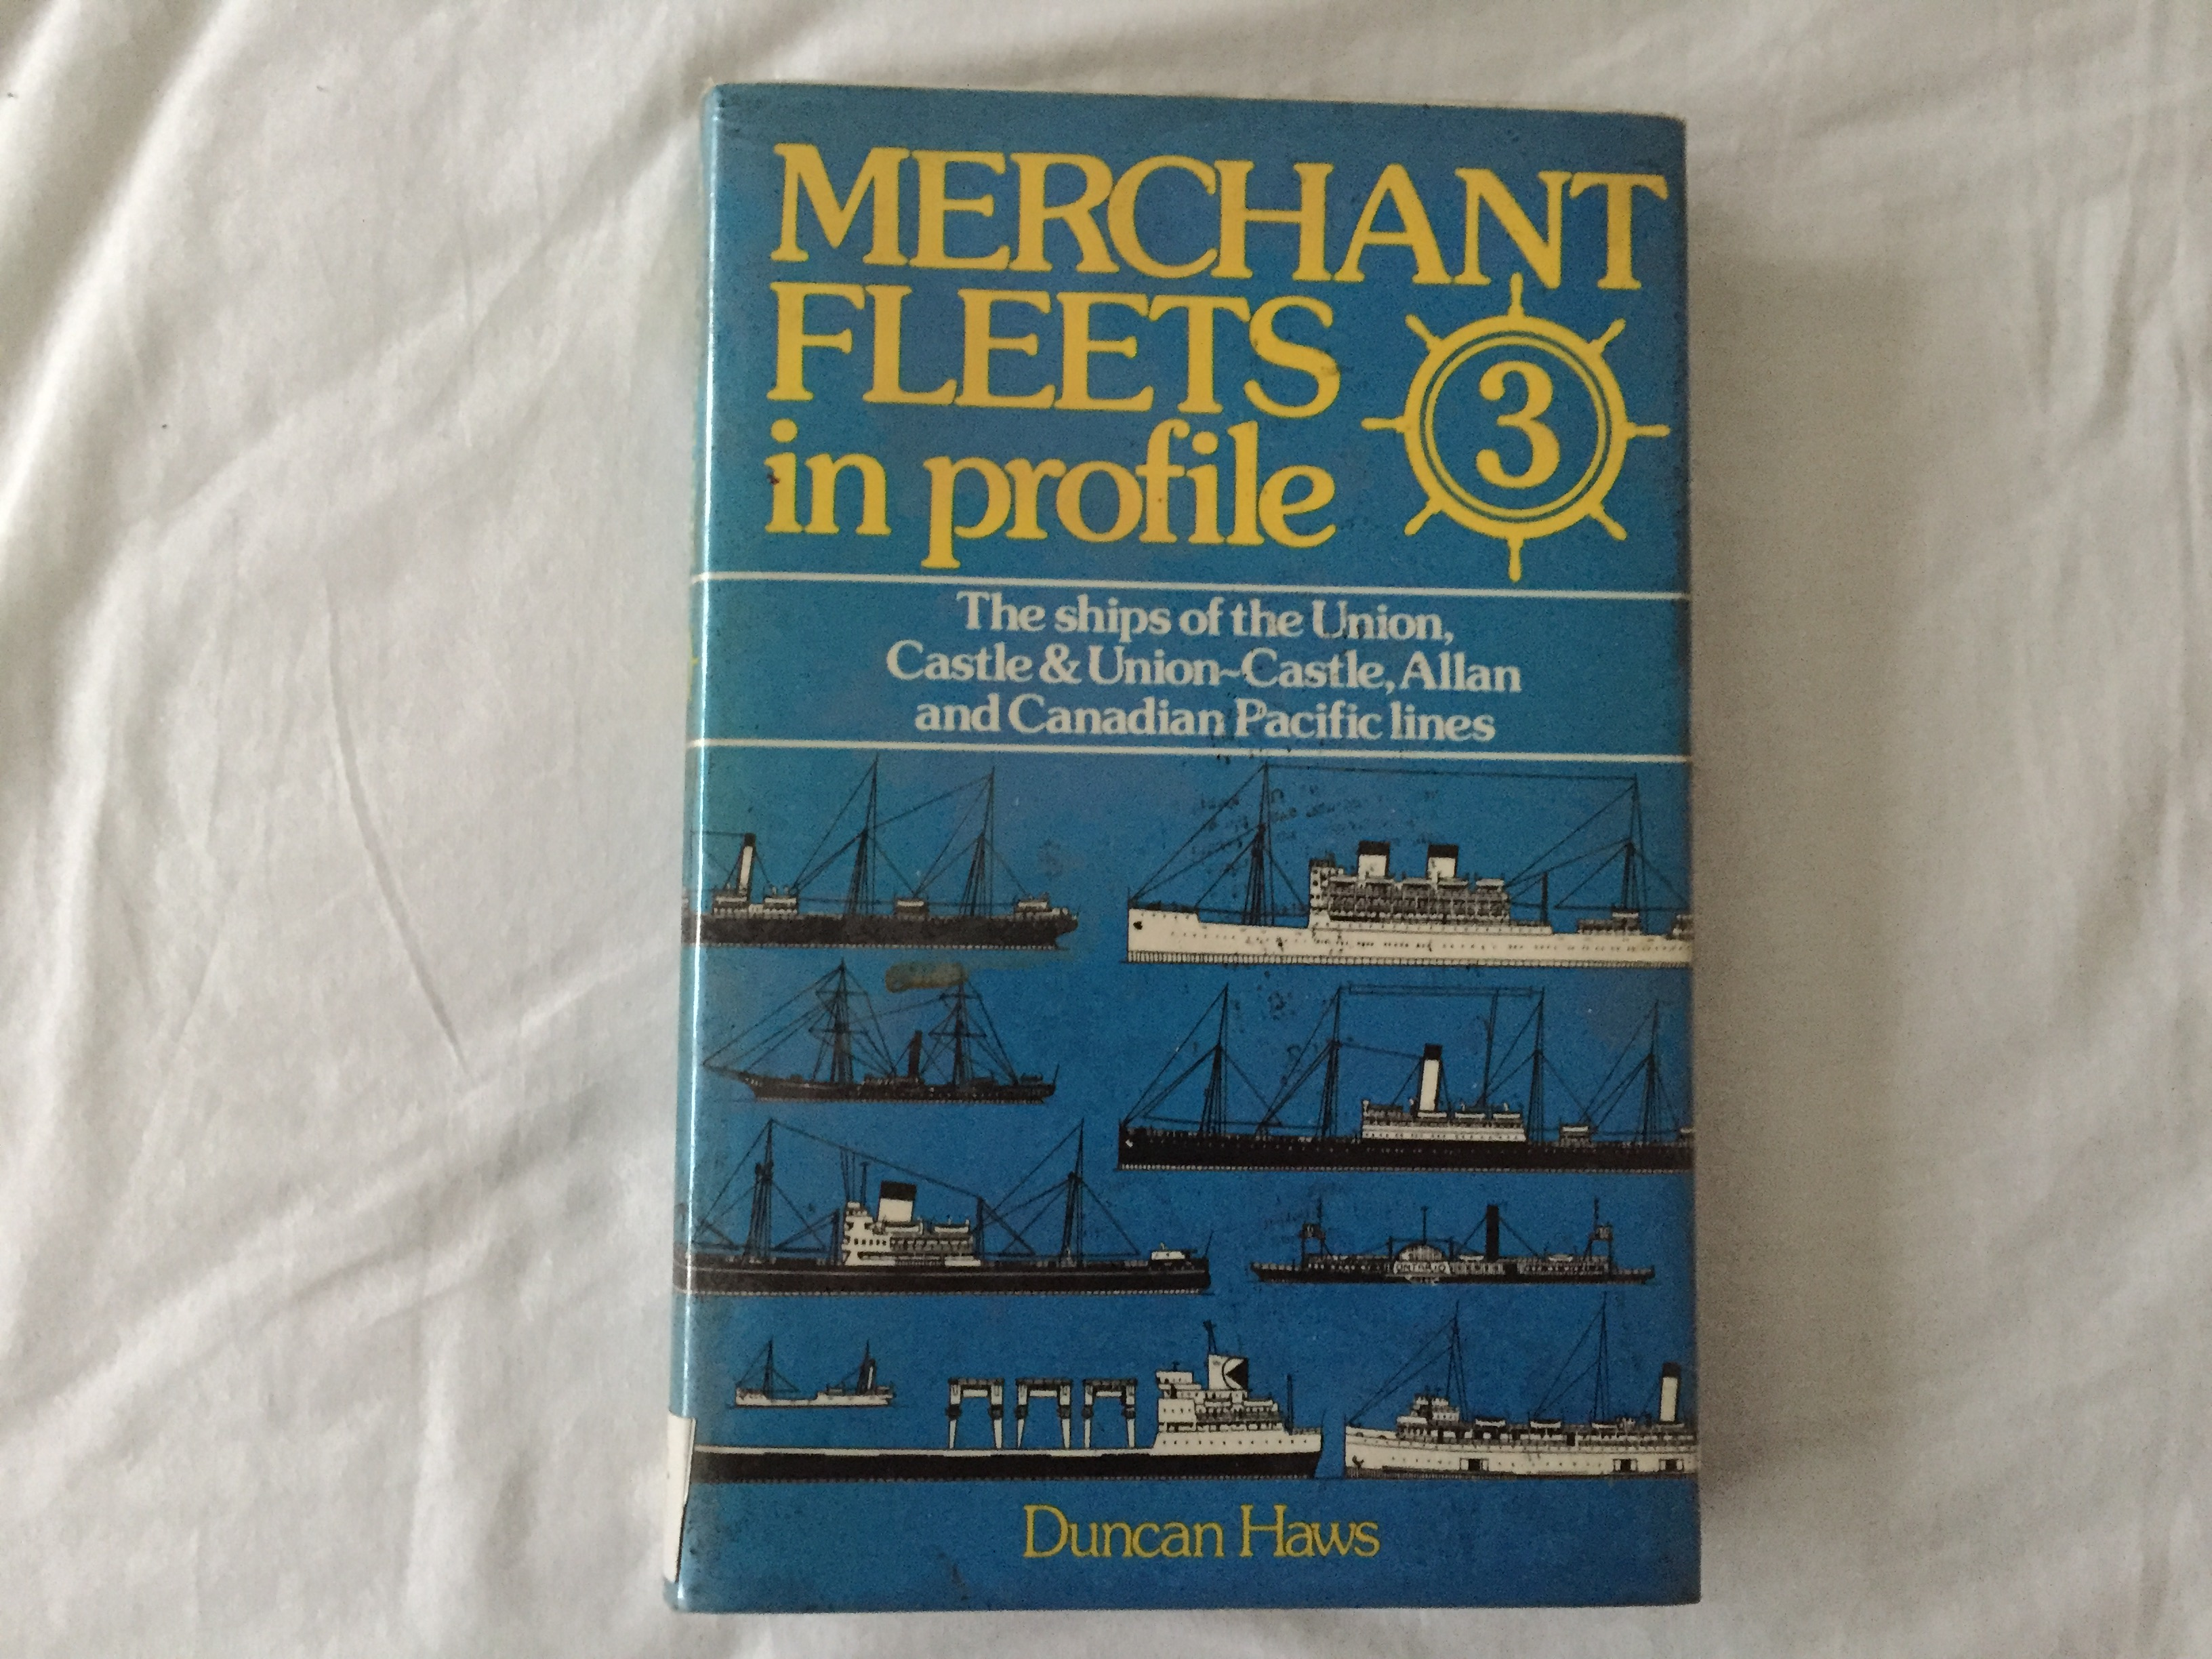 MARITIME BOOK ENTITLED MERCHANT FLEETS COVERING THE VESSELS OF THE UNION CASTLE, ALLAN AND CANADIAN PACIFIC LINE